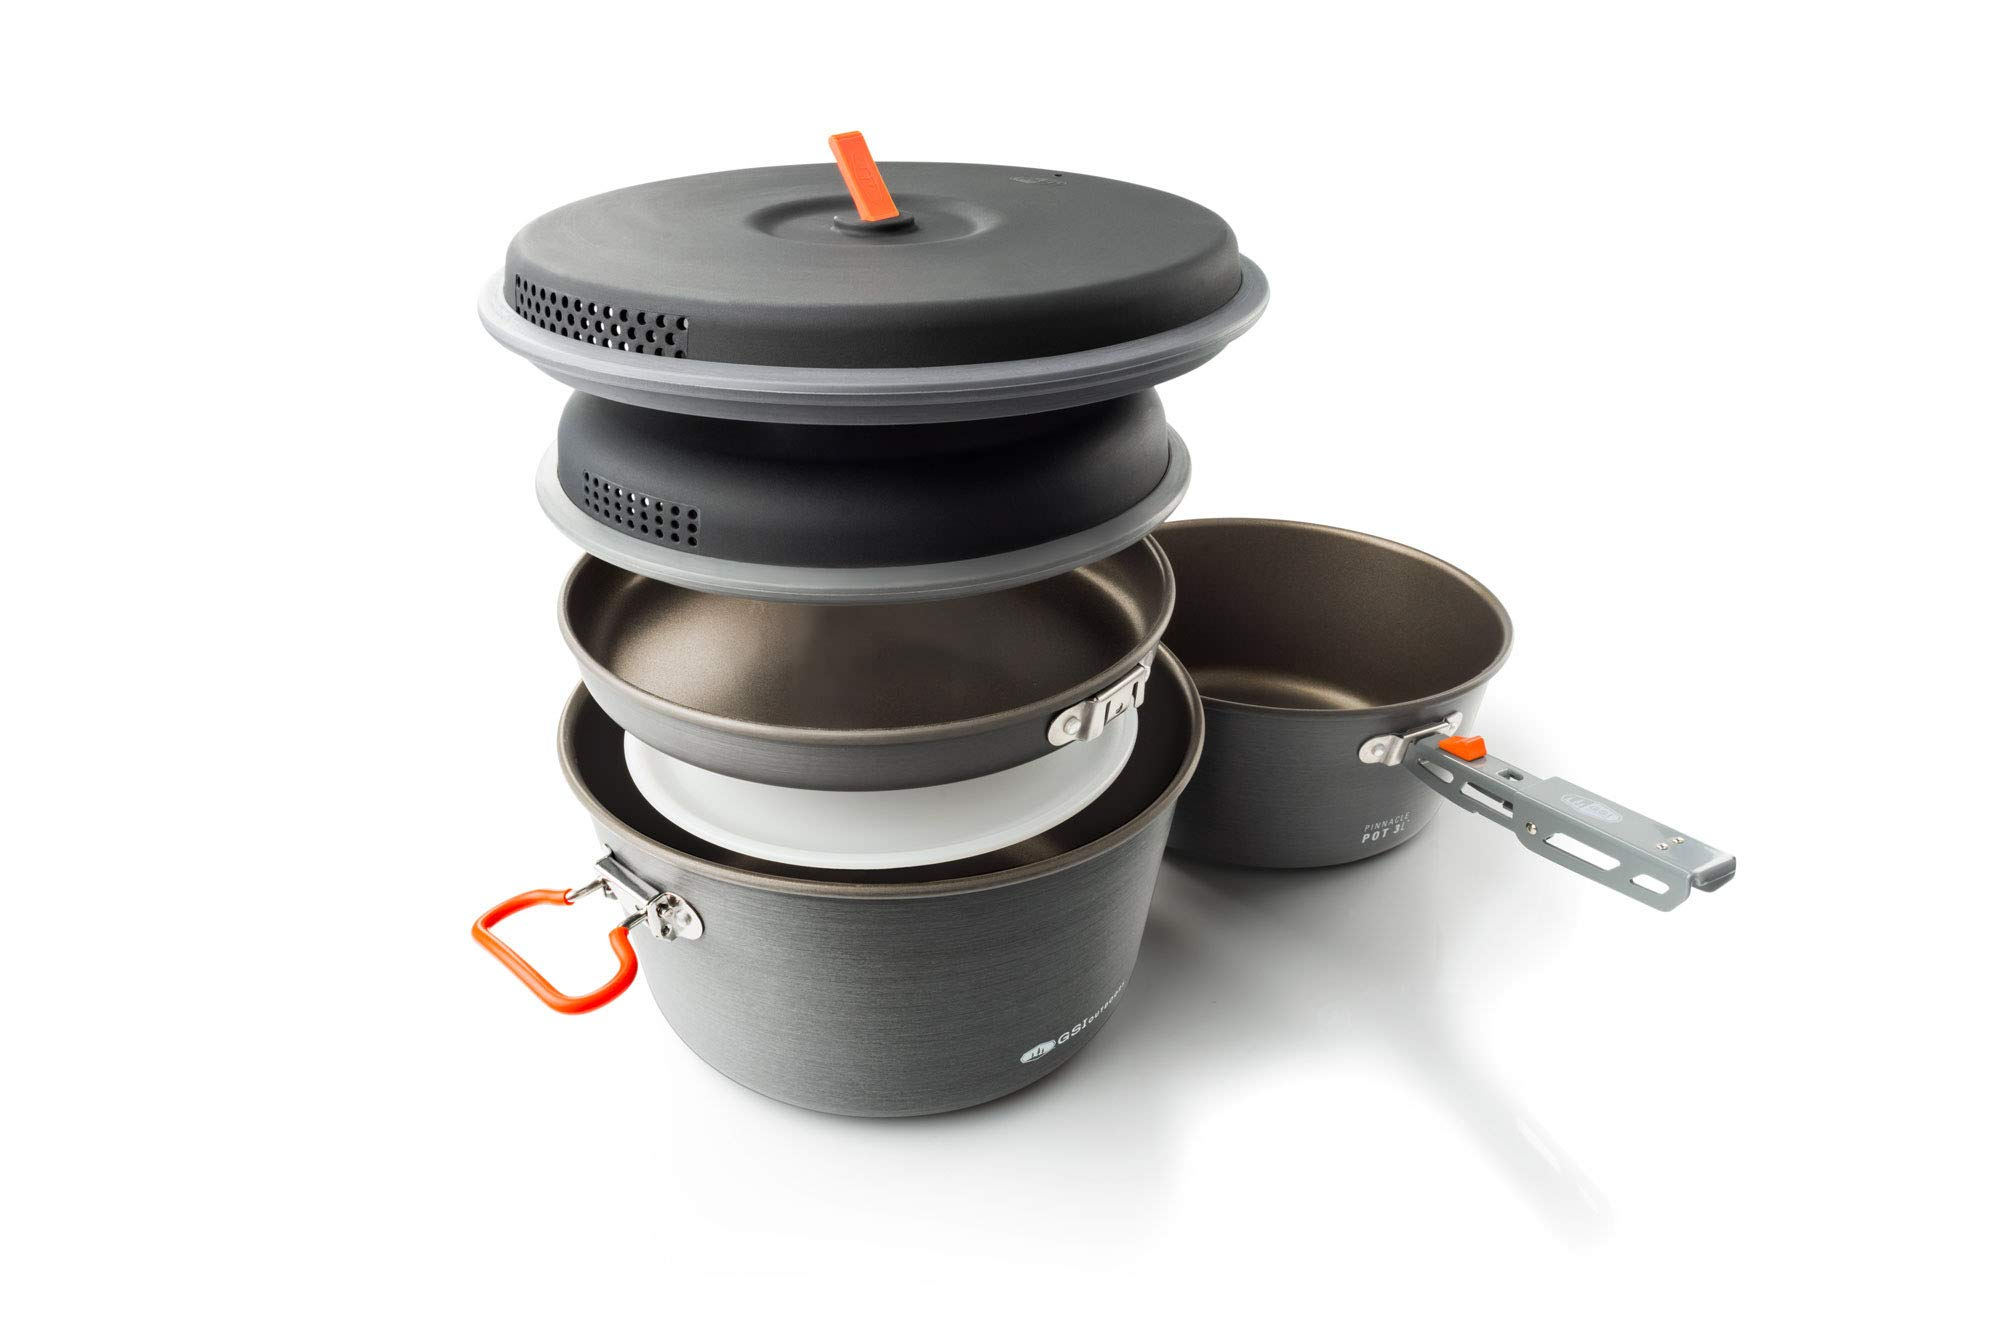 GSI Outdoors - Pinnacle Base Camper, Camping Cook Set, Large, Superior Backcountry Cookware Since 1985 by GSI Outdoors